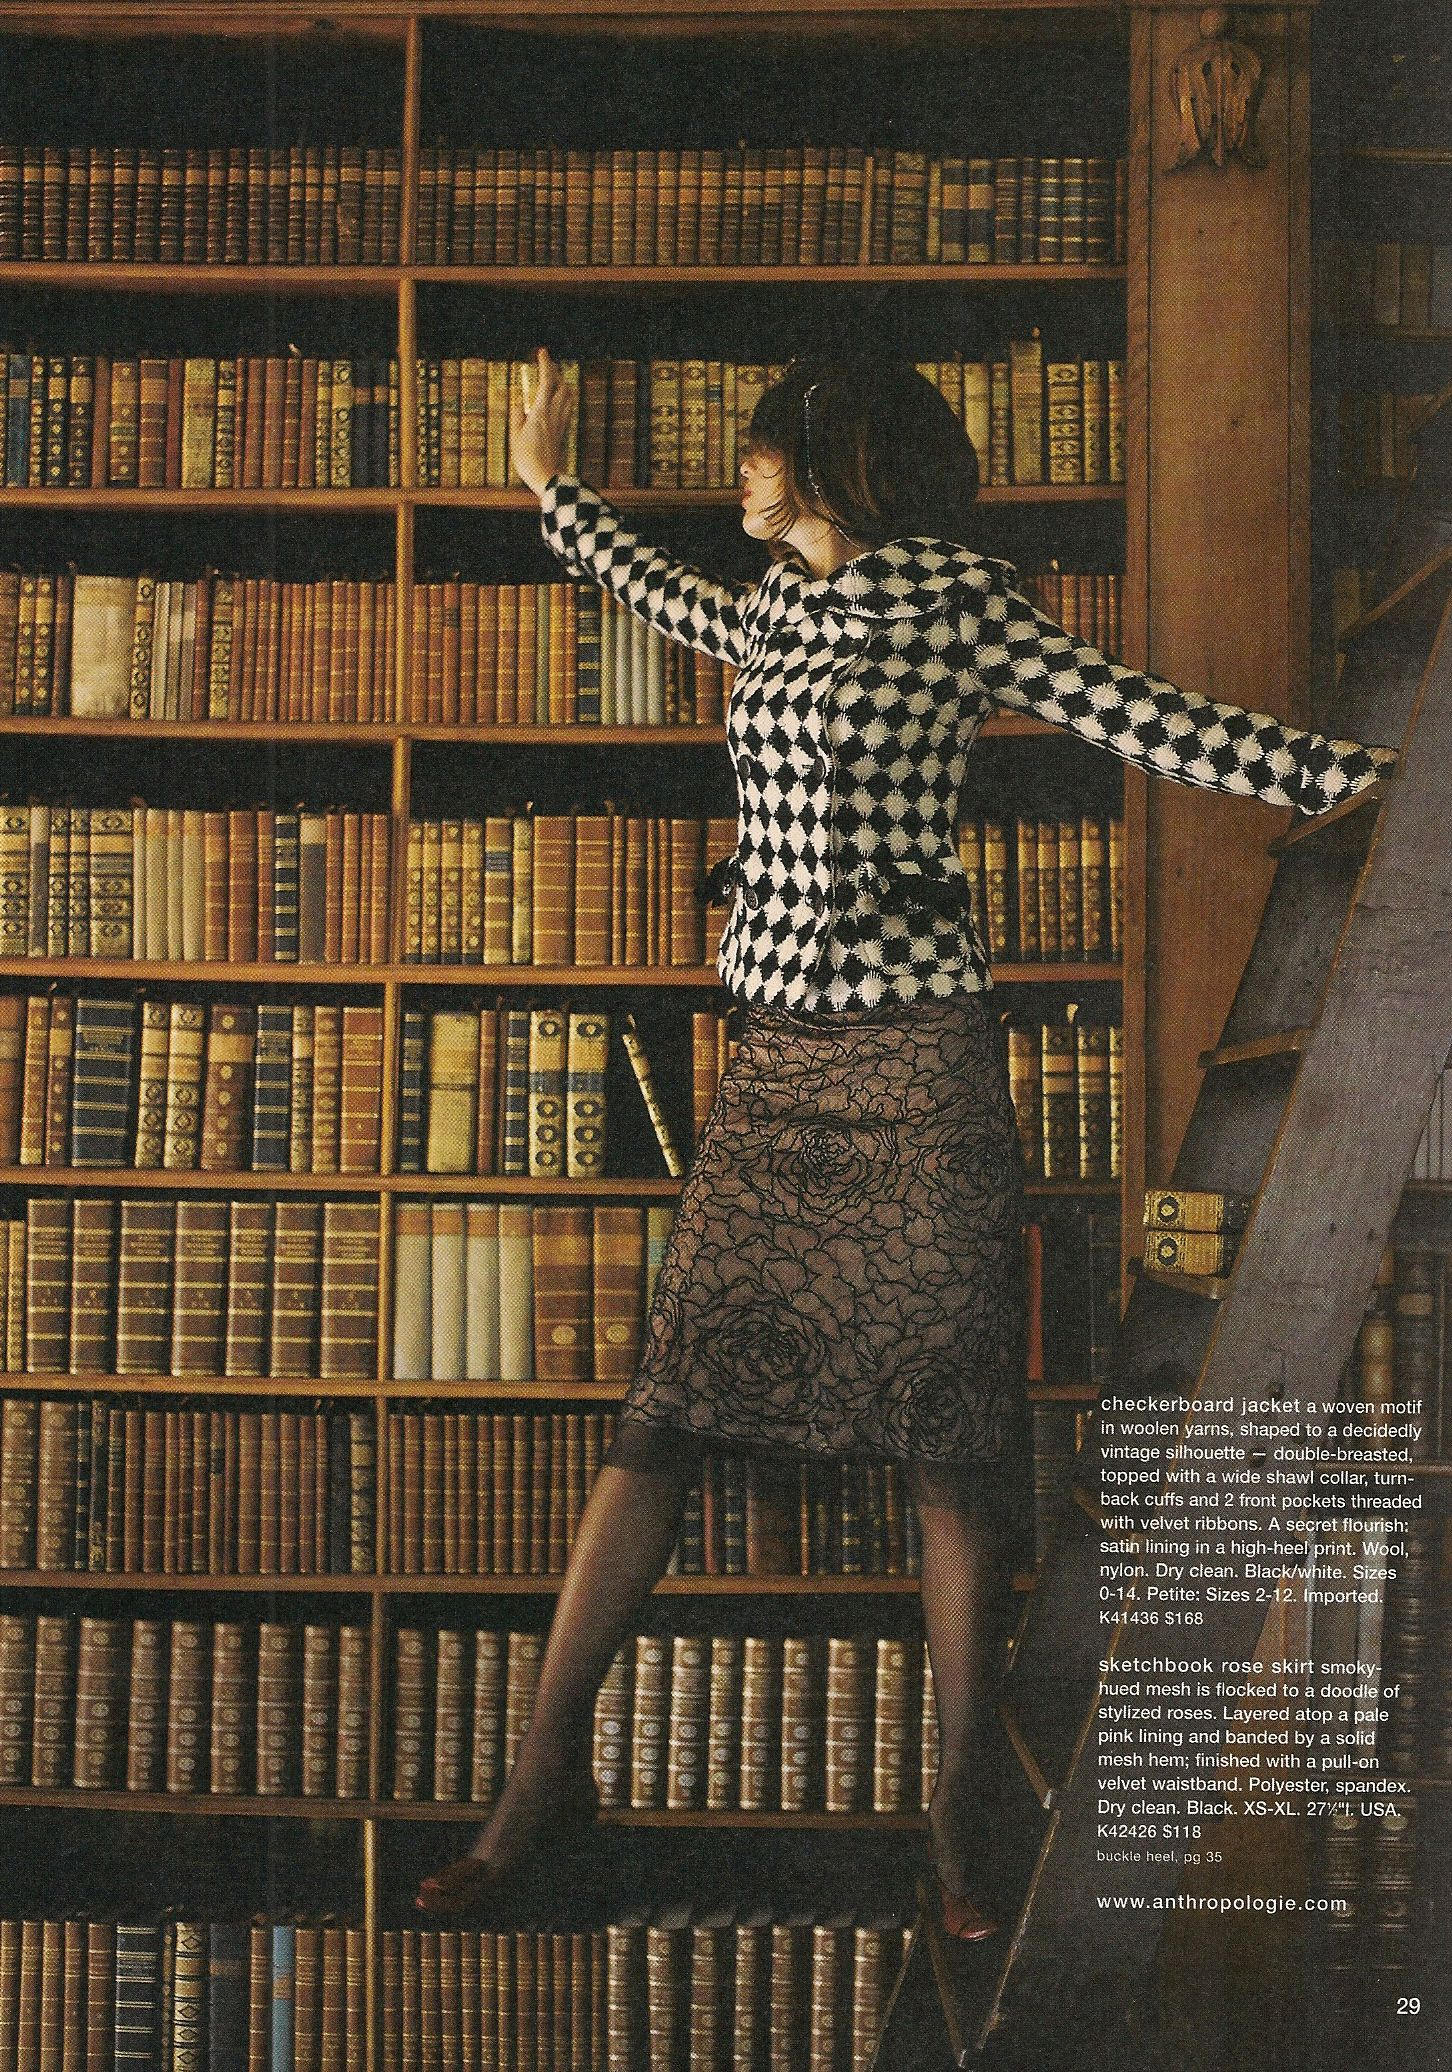 Library-Themed Catalogue Shoot, Anthropologie Autumn 2004 ...